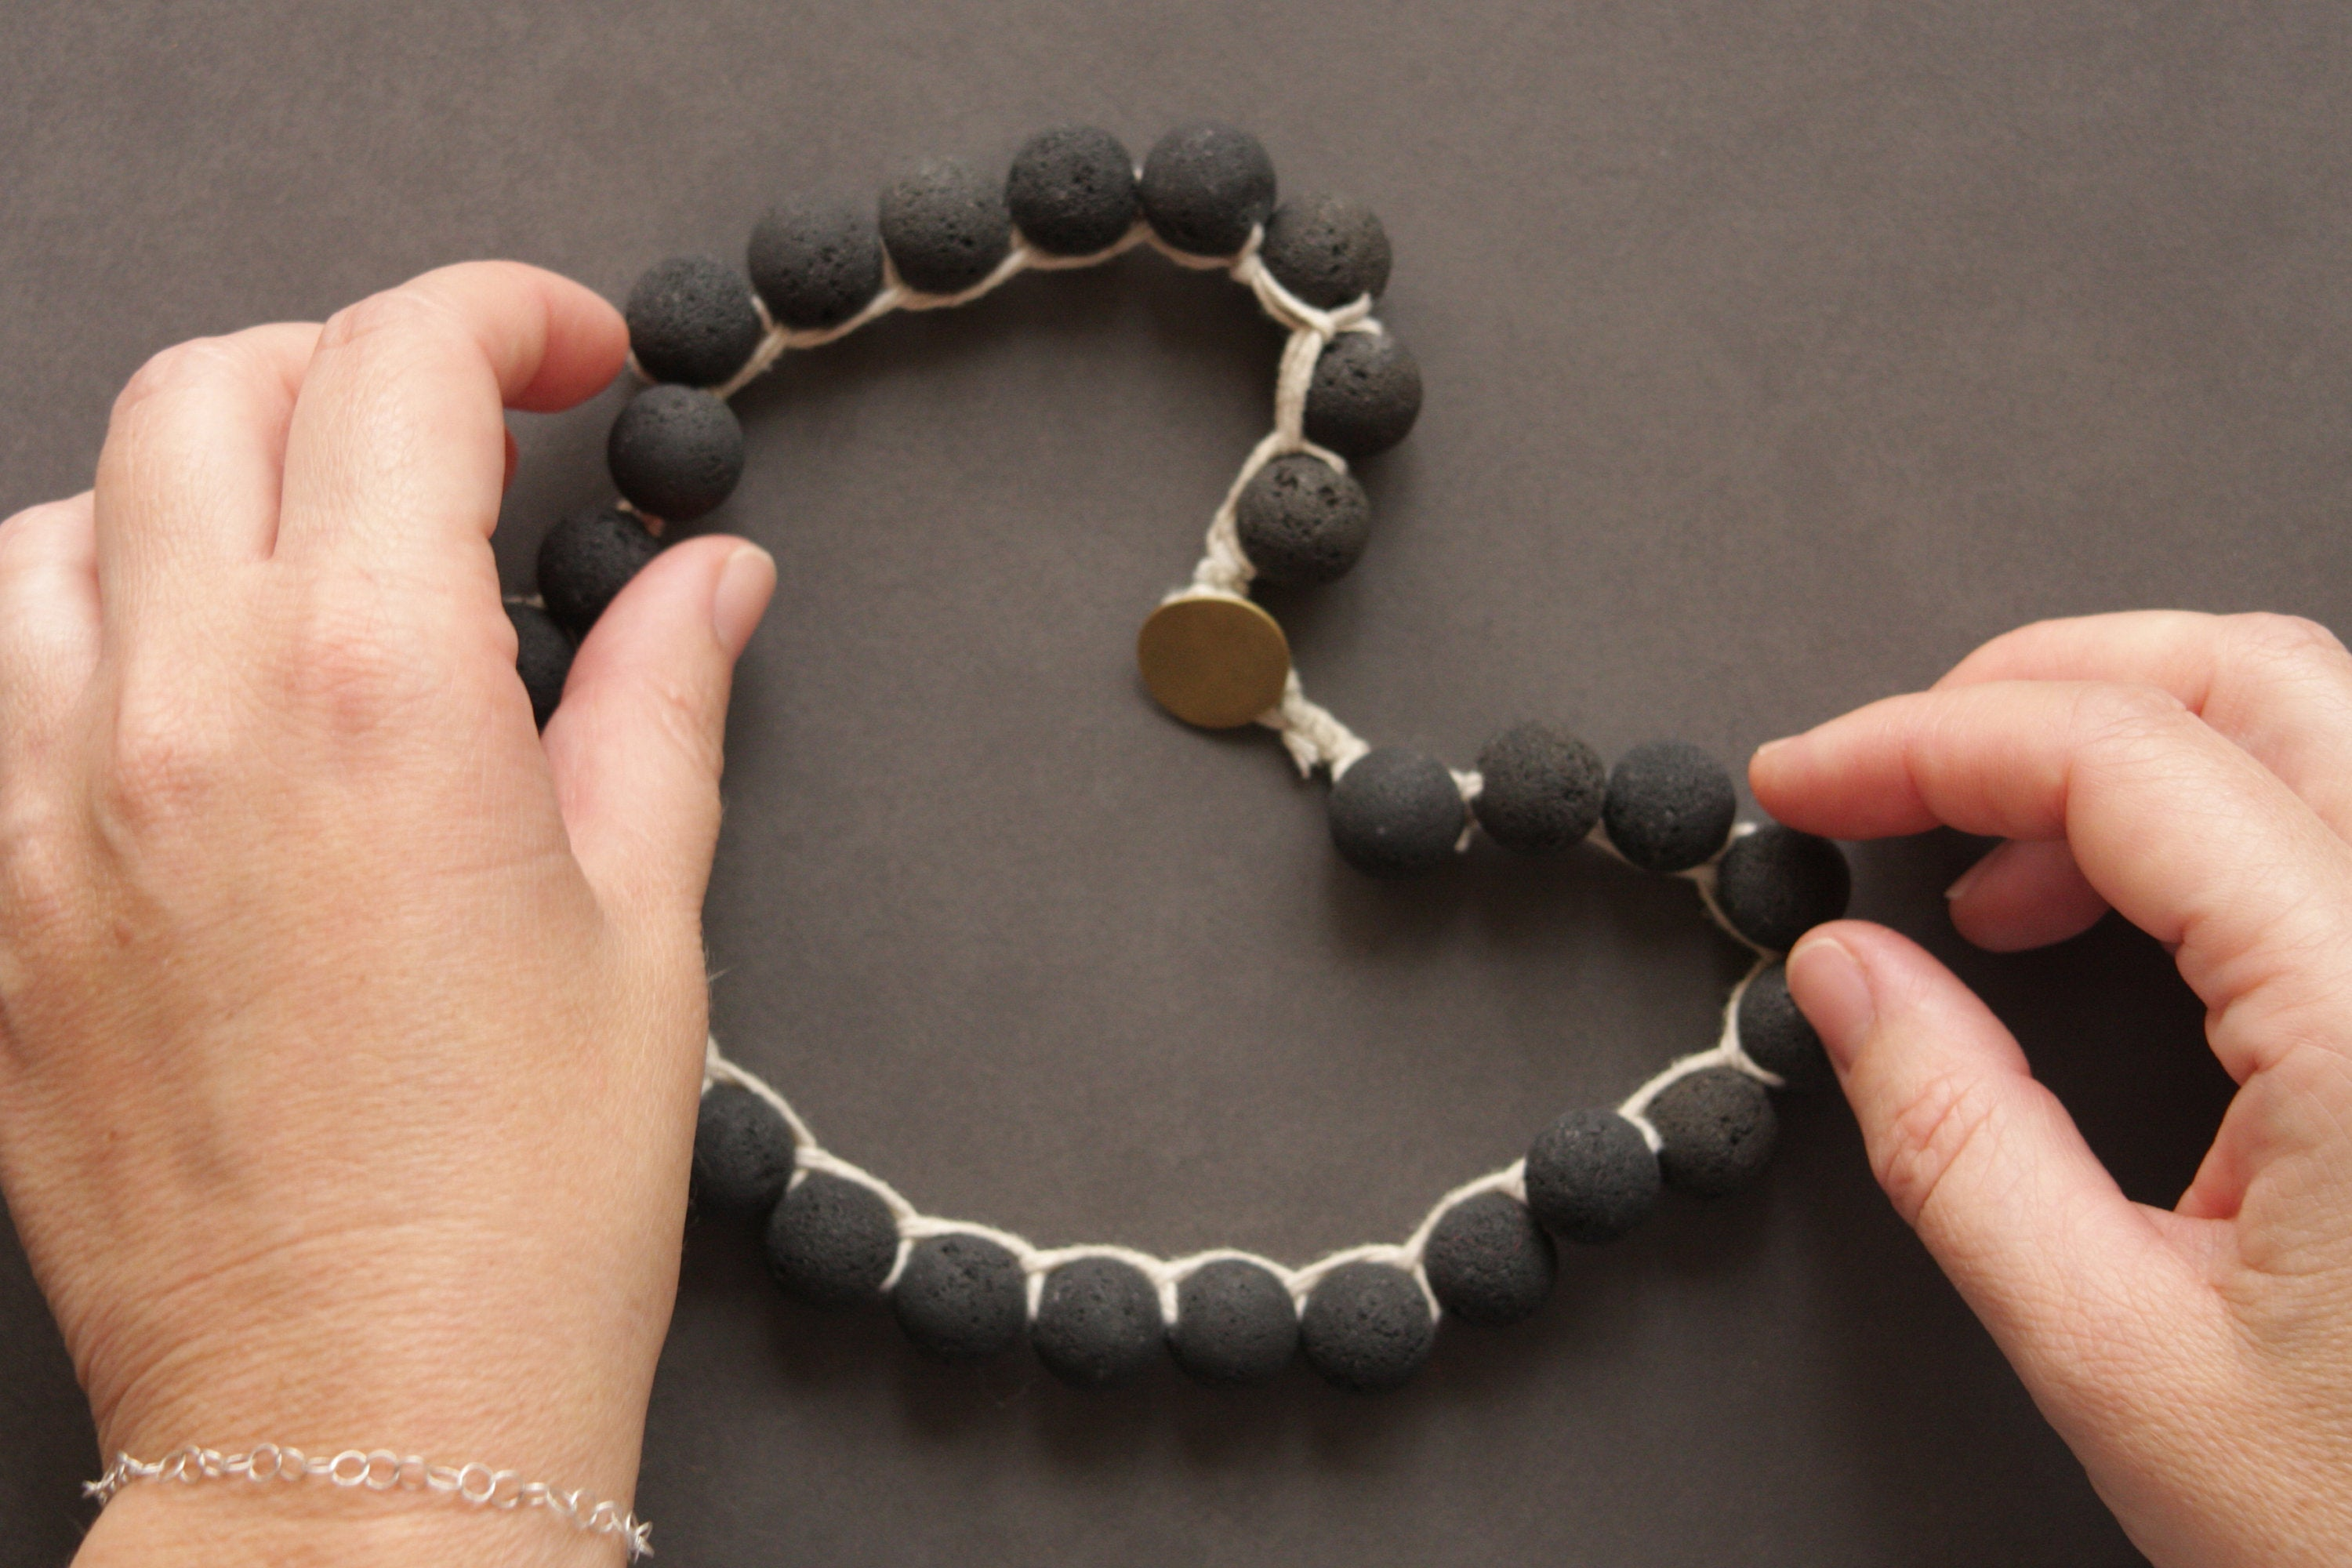 Black Lava and Silver Button Closer Rough Stone Necklace By Hadas Shaham - hs